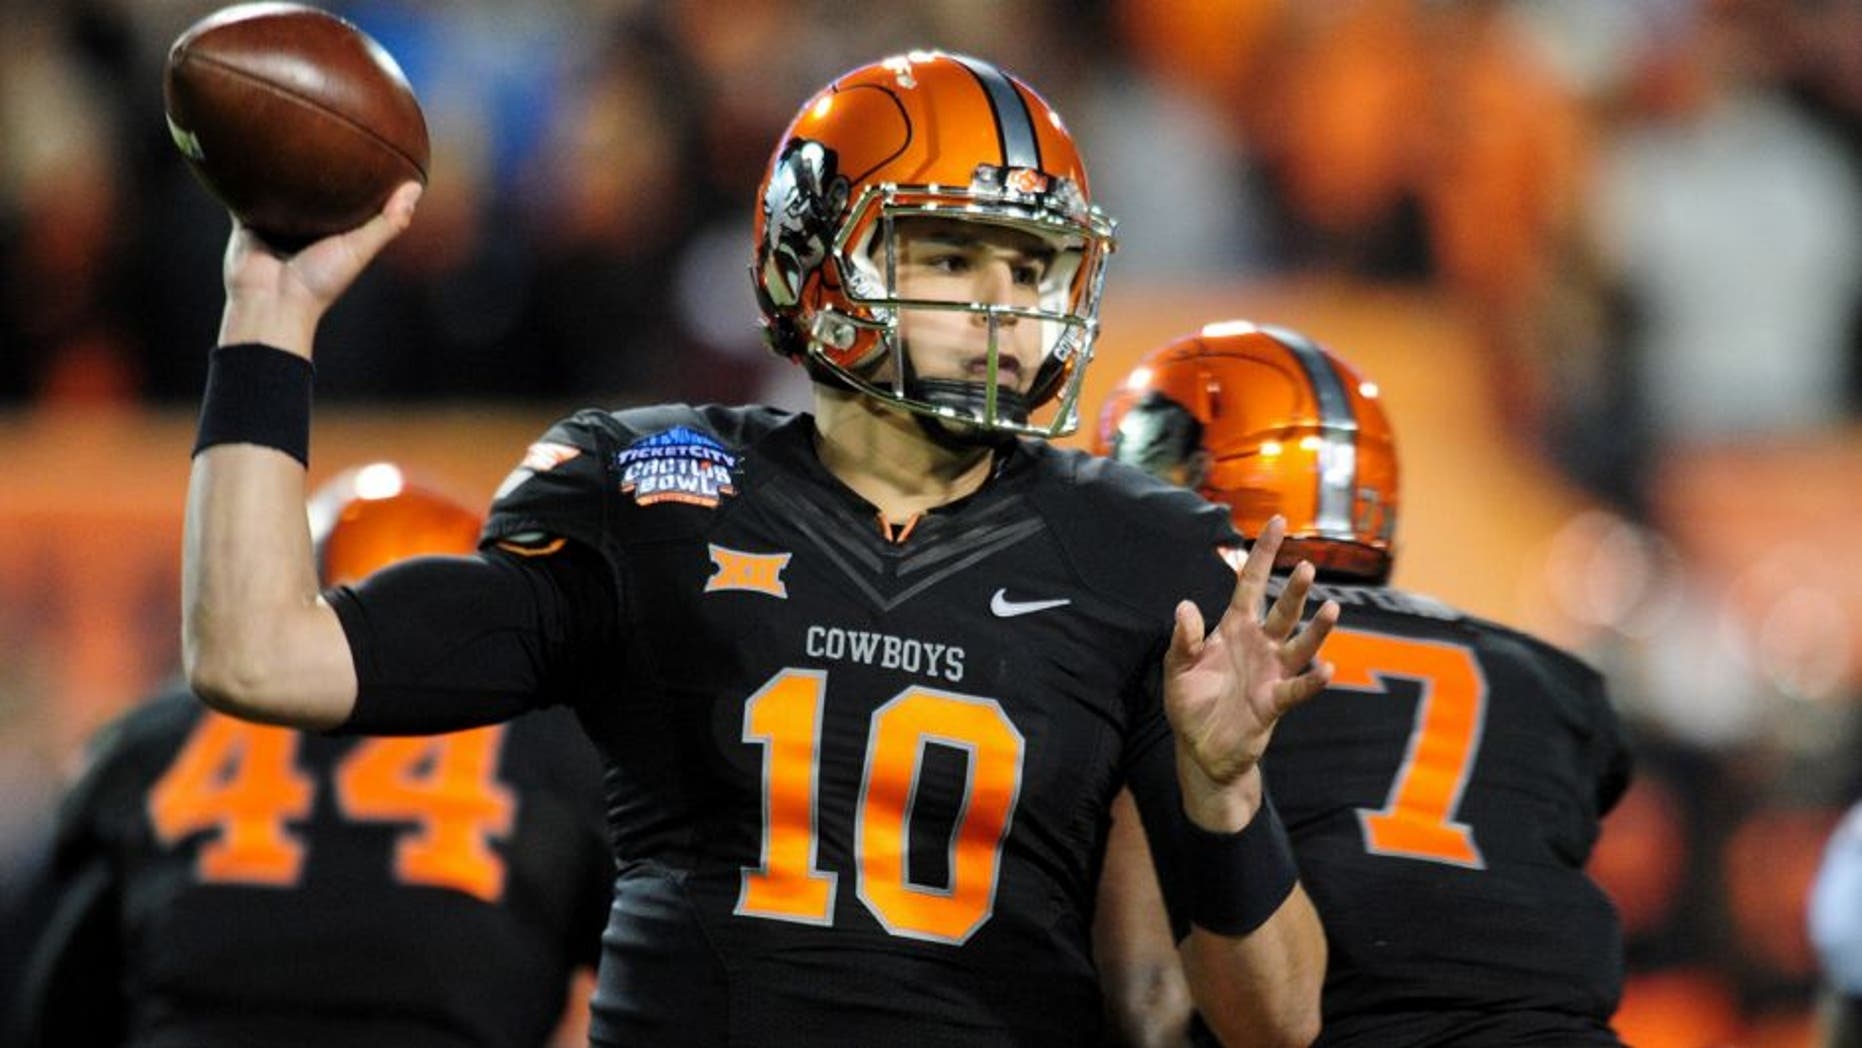 Jan 2, 2015; Tempe, AZ, USA; Oklahoma State Cowboys quarterback Mason Rudolph (10) throws during the first half against the Washington Huskies in the 2015 Cactus Bowl at Sun Devil Stadium. Mandatory Credit: Matt Kartozian-USA TODAY Sports